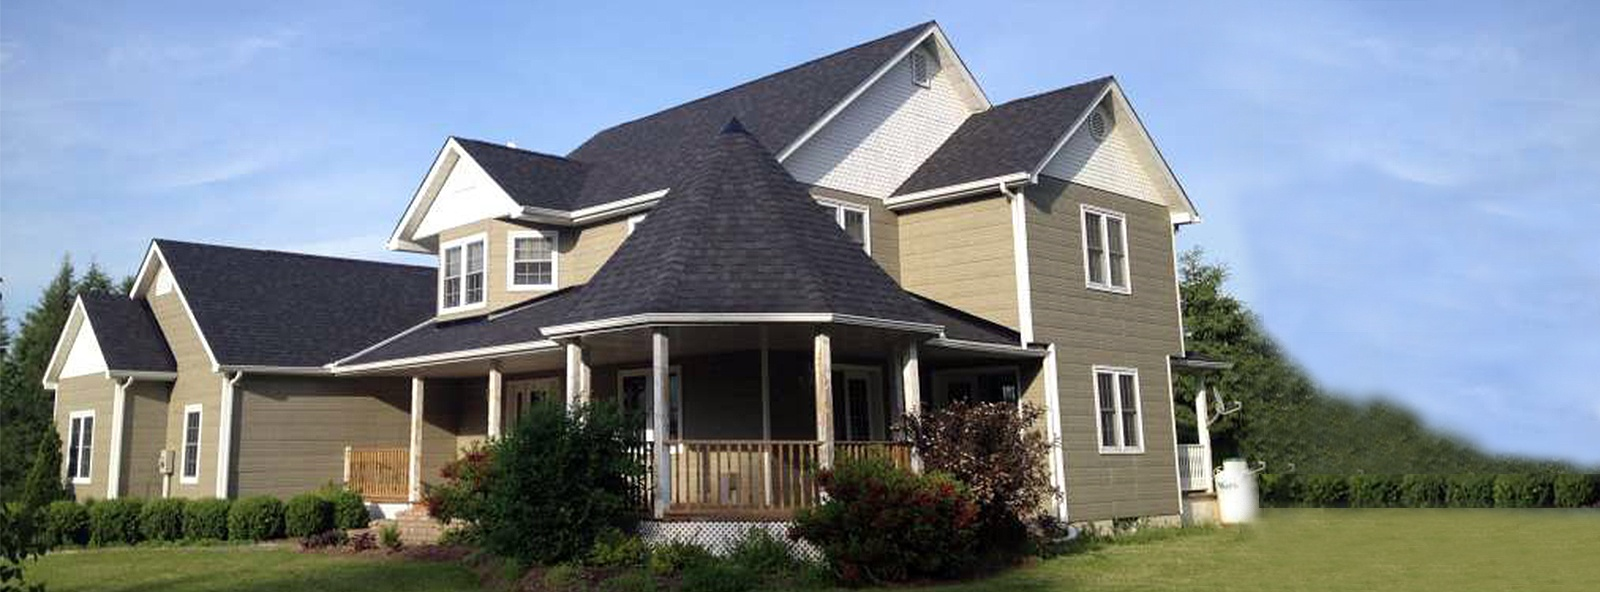 Blog by HMC Roofing & Contracting